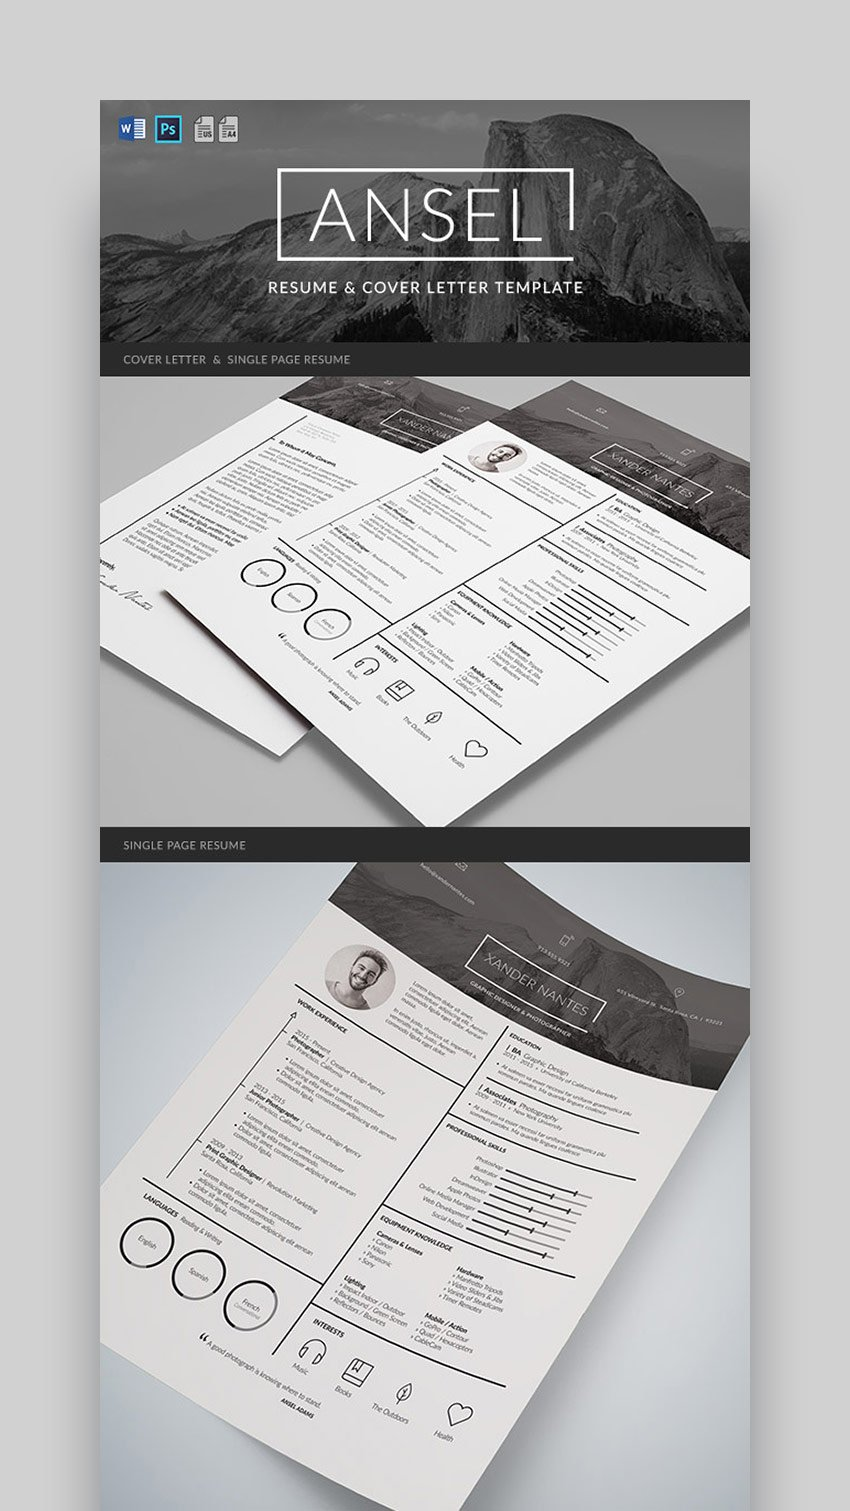 Ansel - Graphic Resume and Cover Letter Template